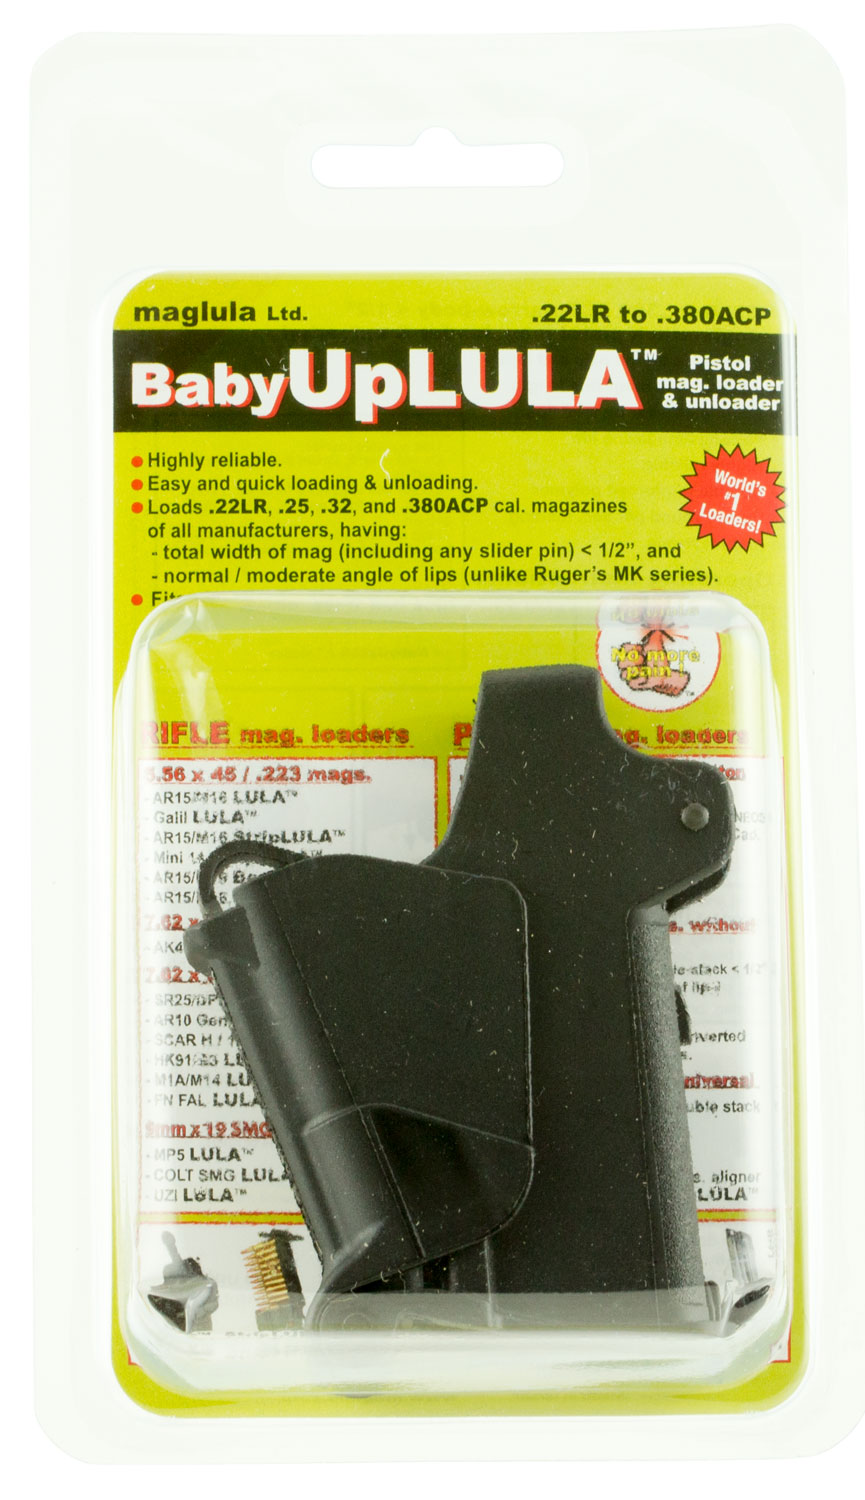 maglula UP64B UpLULA 22LR/25/32/380ACP Finish